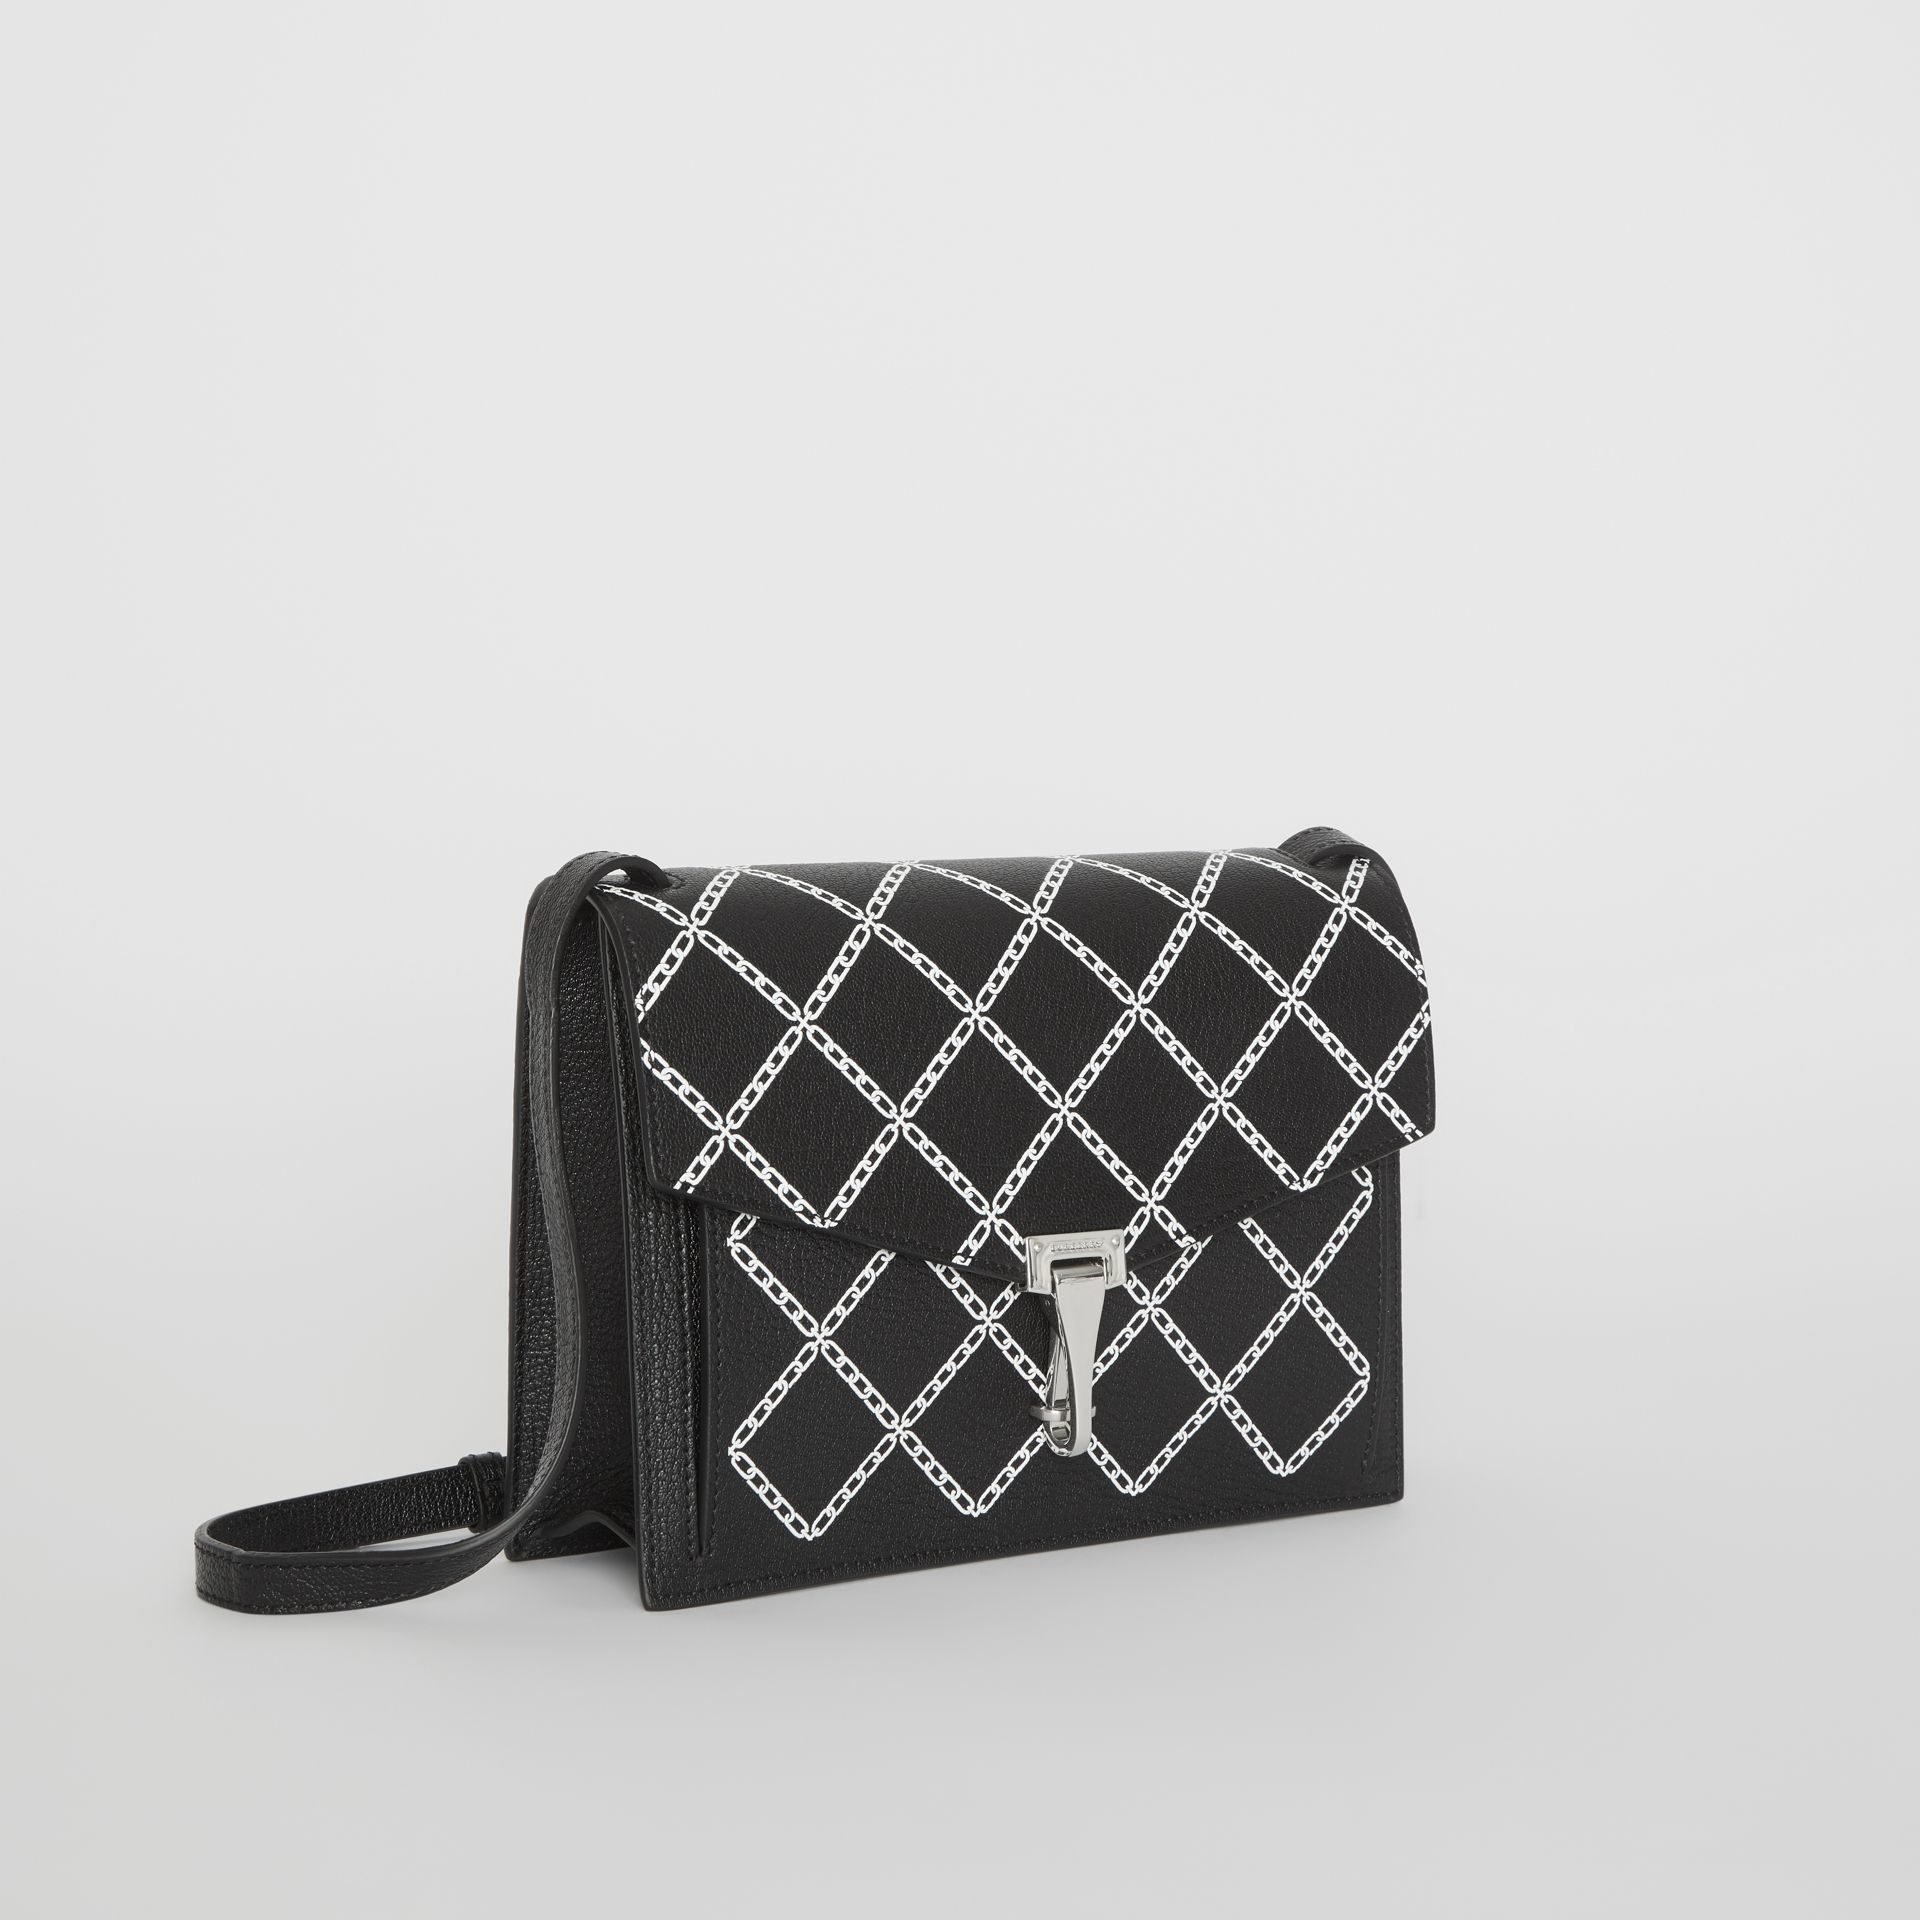 Small Link Print Leather Crossbody Bag in Black - Women | Burberry - gallery image 6